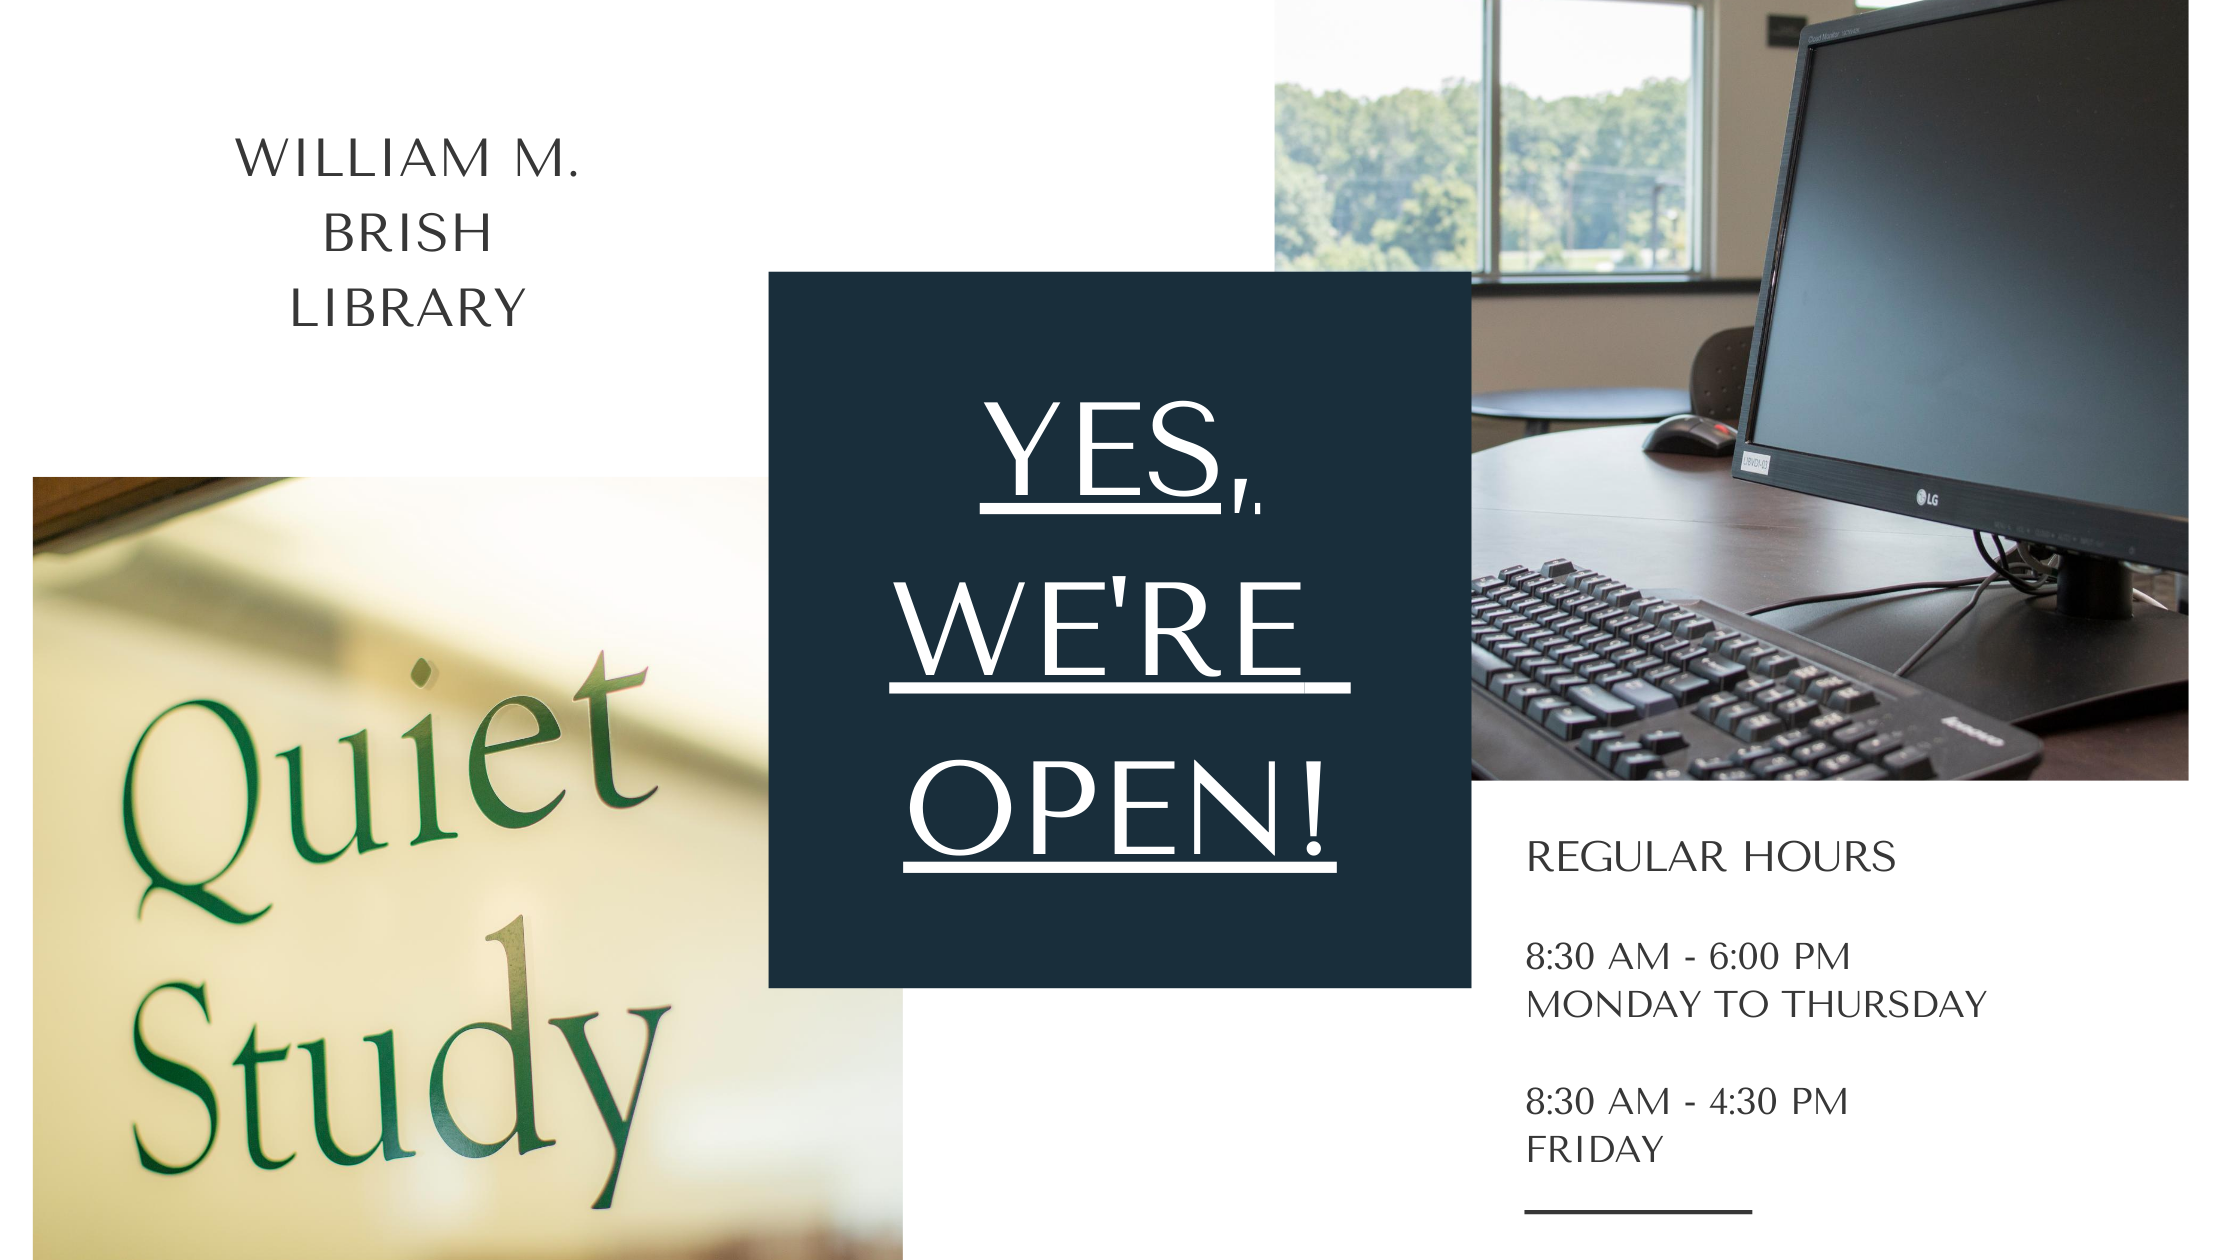 Yes, we're open! Regular hours: 8:30 am - 4:30 pm Monday to Thursday and 8:30 am to 4:30 pm Friday